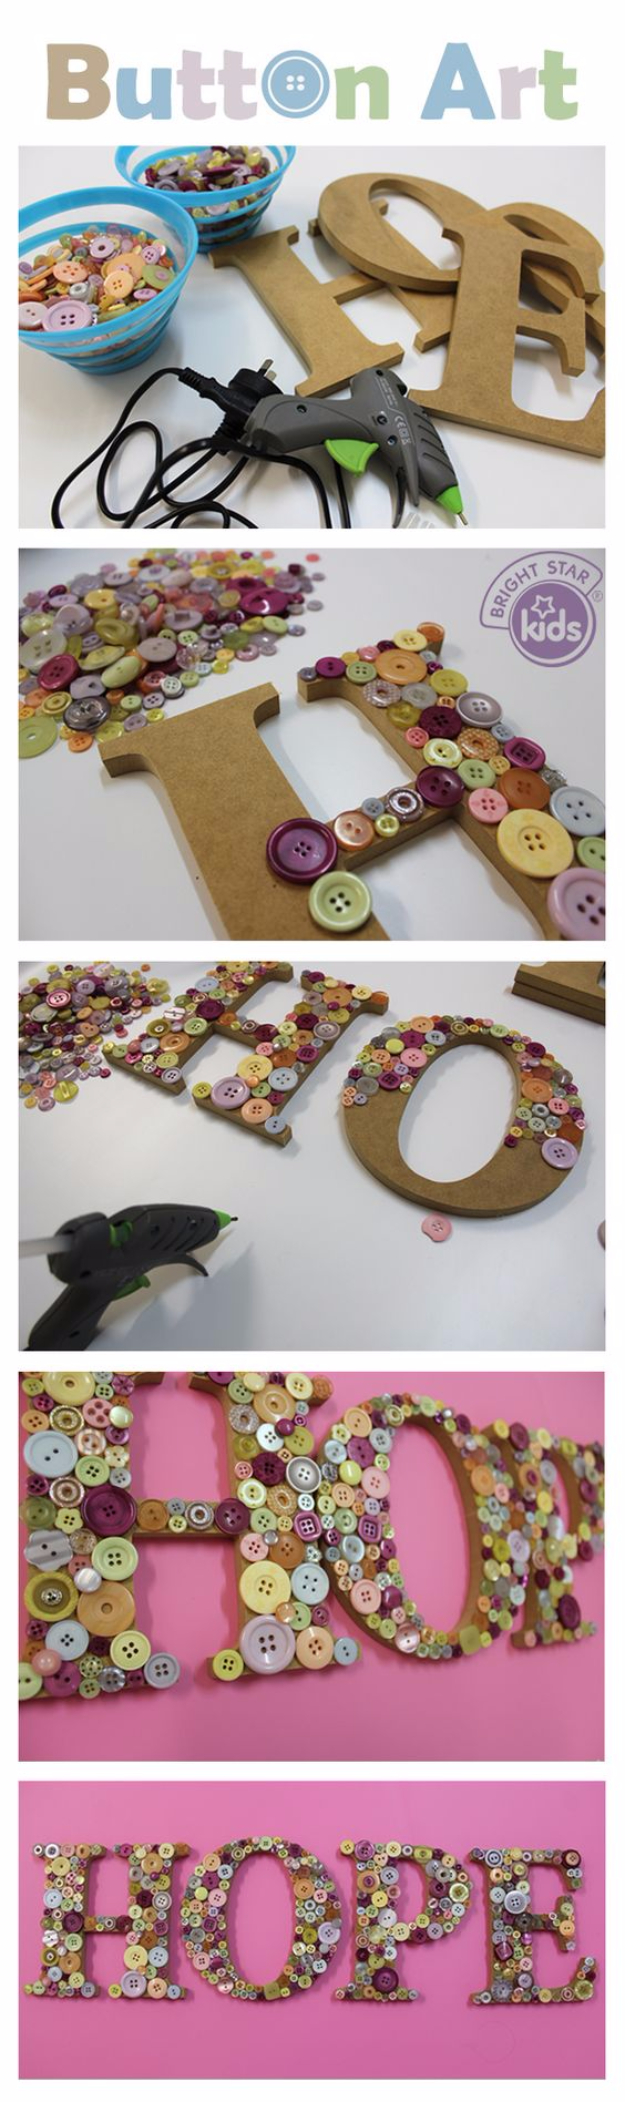 DIY Projects and Crafts Made With Buttons - Button Art - Easy and Quick Projects You Can Make With Buttons - Cool and Creative Crafts, Sewing Ideas and Homemade Gifts for Women, Teens, Kids and Friends - Home Decor, Fashion and Cheap, Inexpensive Fun Things to Make on A Budget